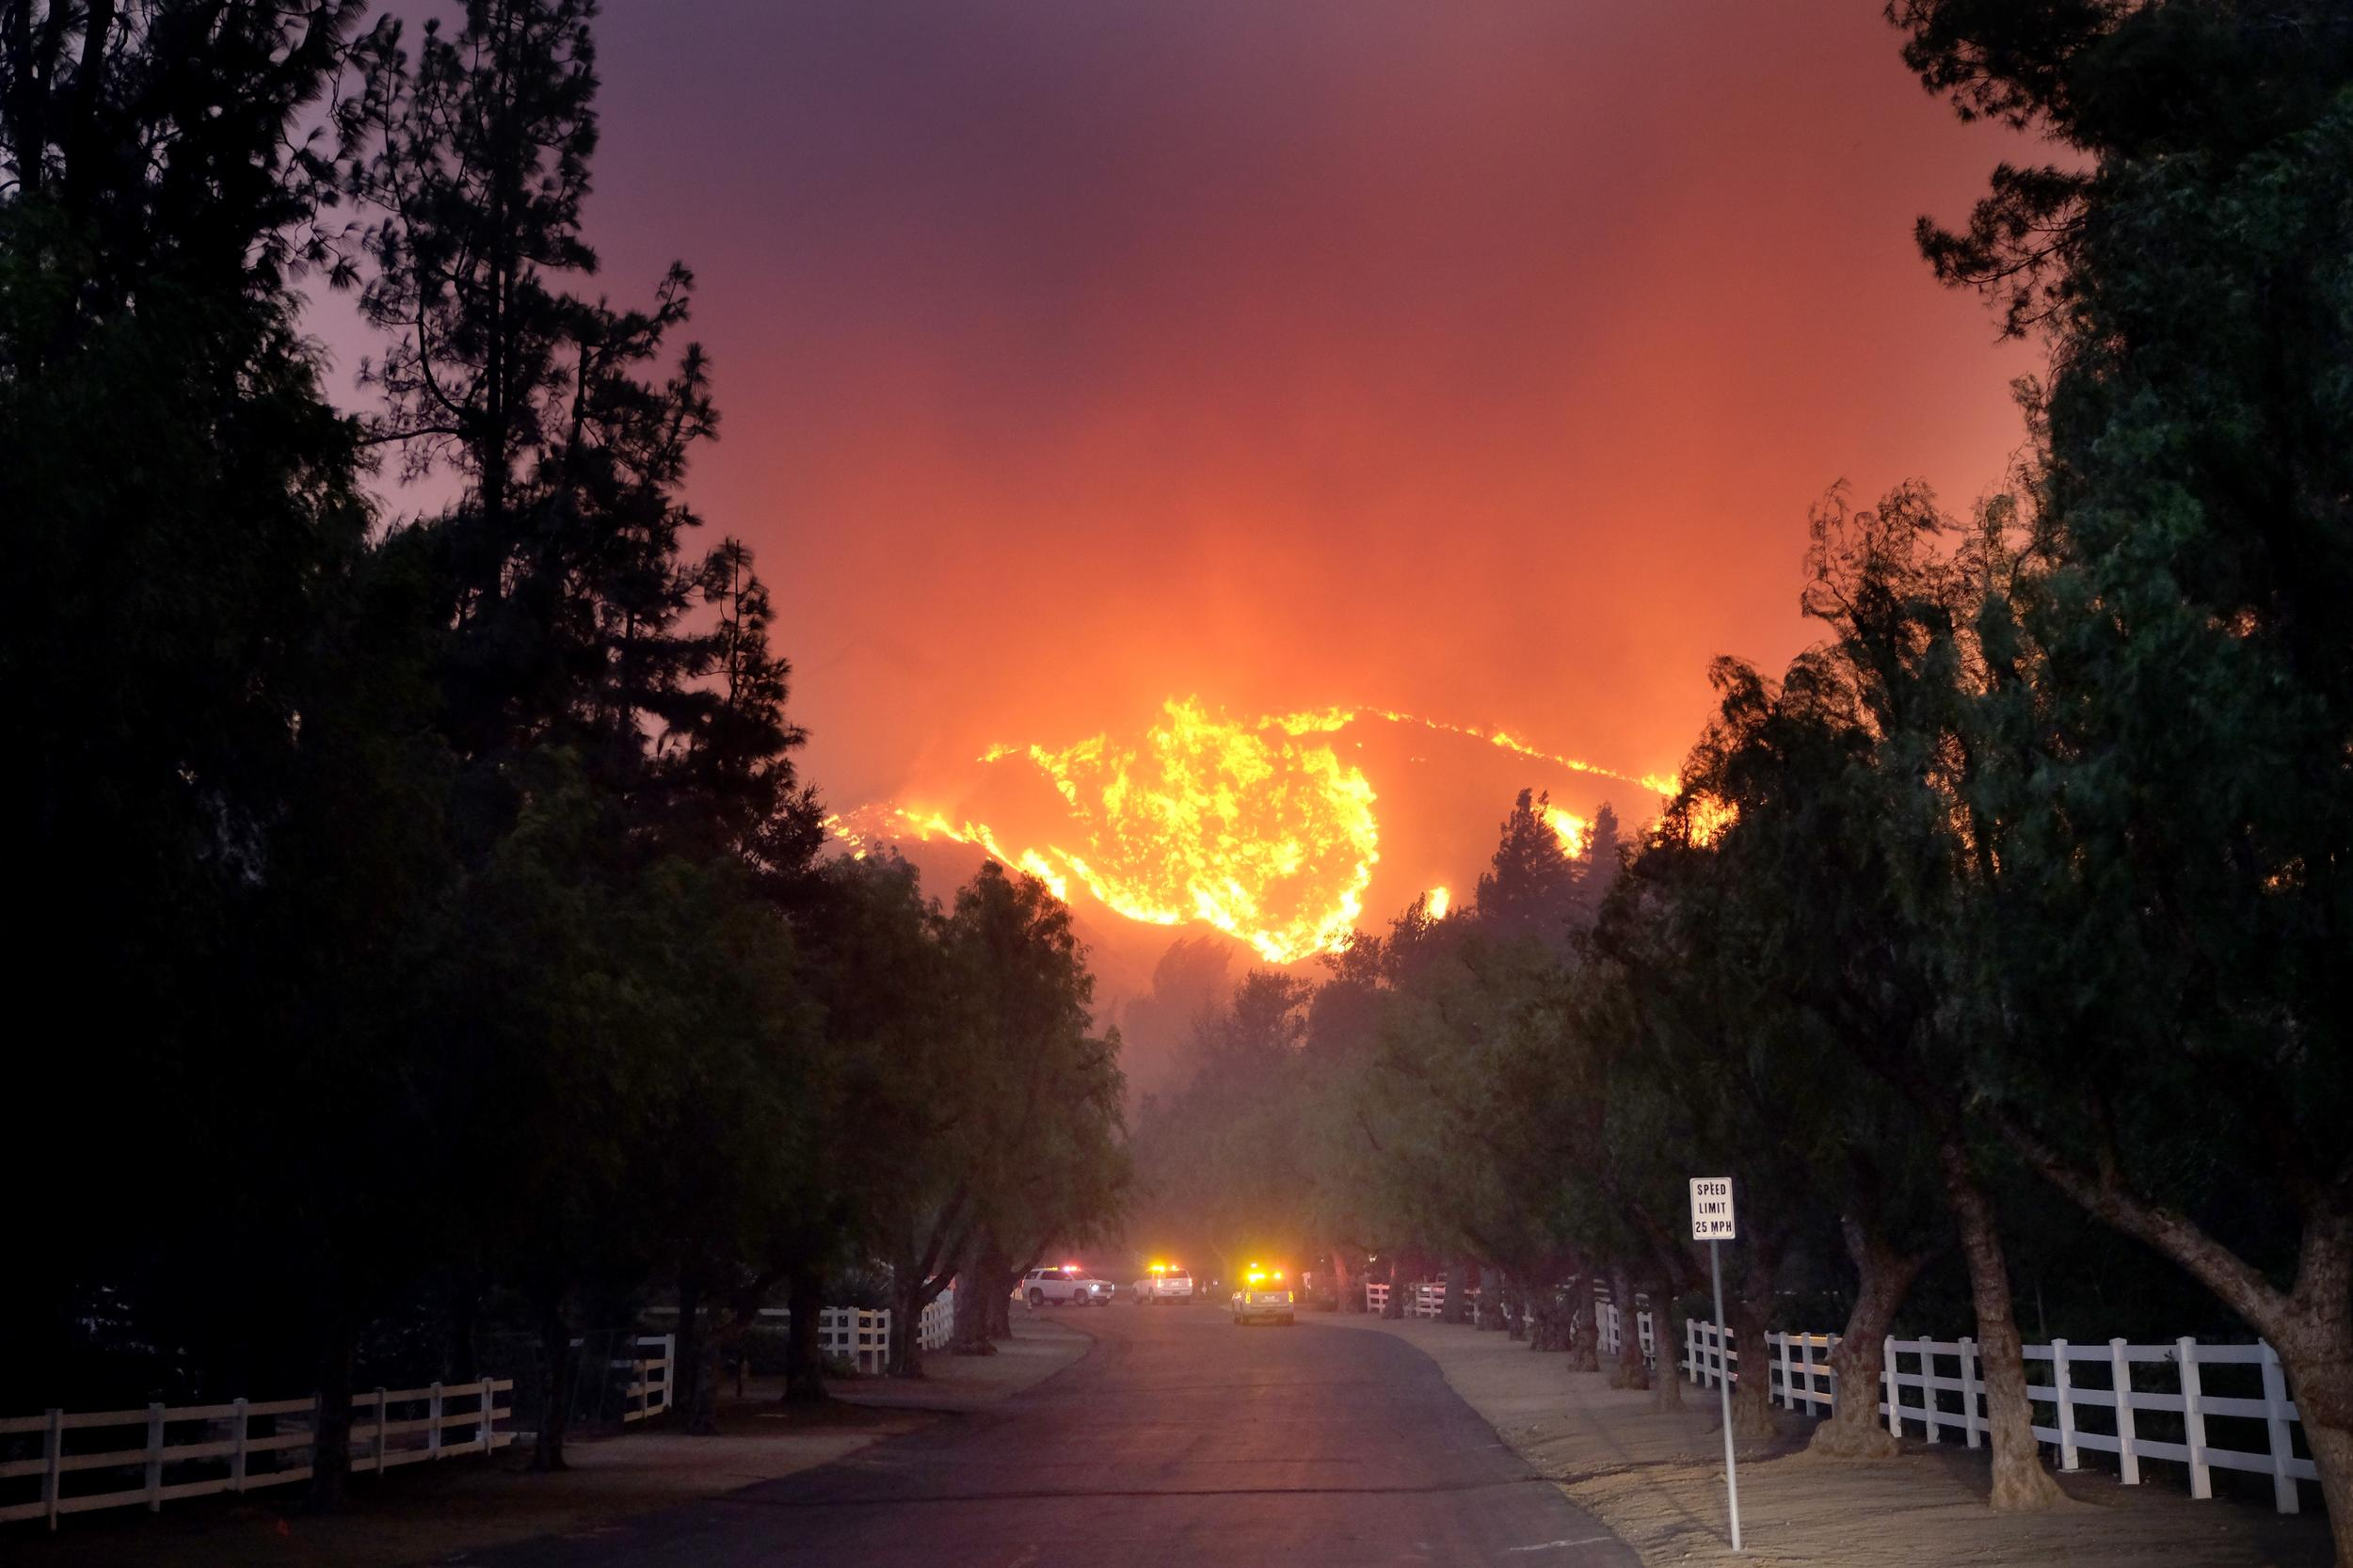 THOUSAND OAKS, CA - NOVEMBER 09: The Woolsey Fire burns towards Paramount Ranch on November 9, 2018 in Agoura Hills, California. (Photo by Matthew Simmons/Getty Images)